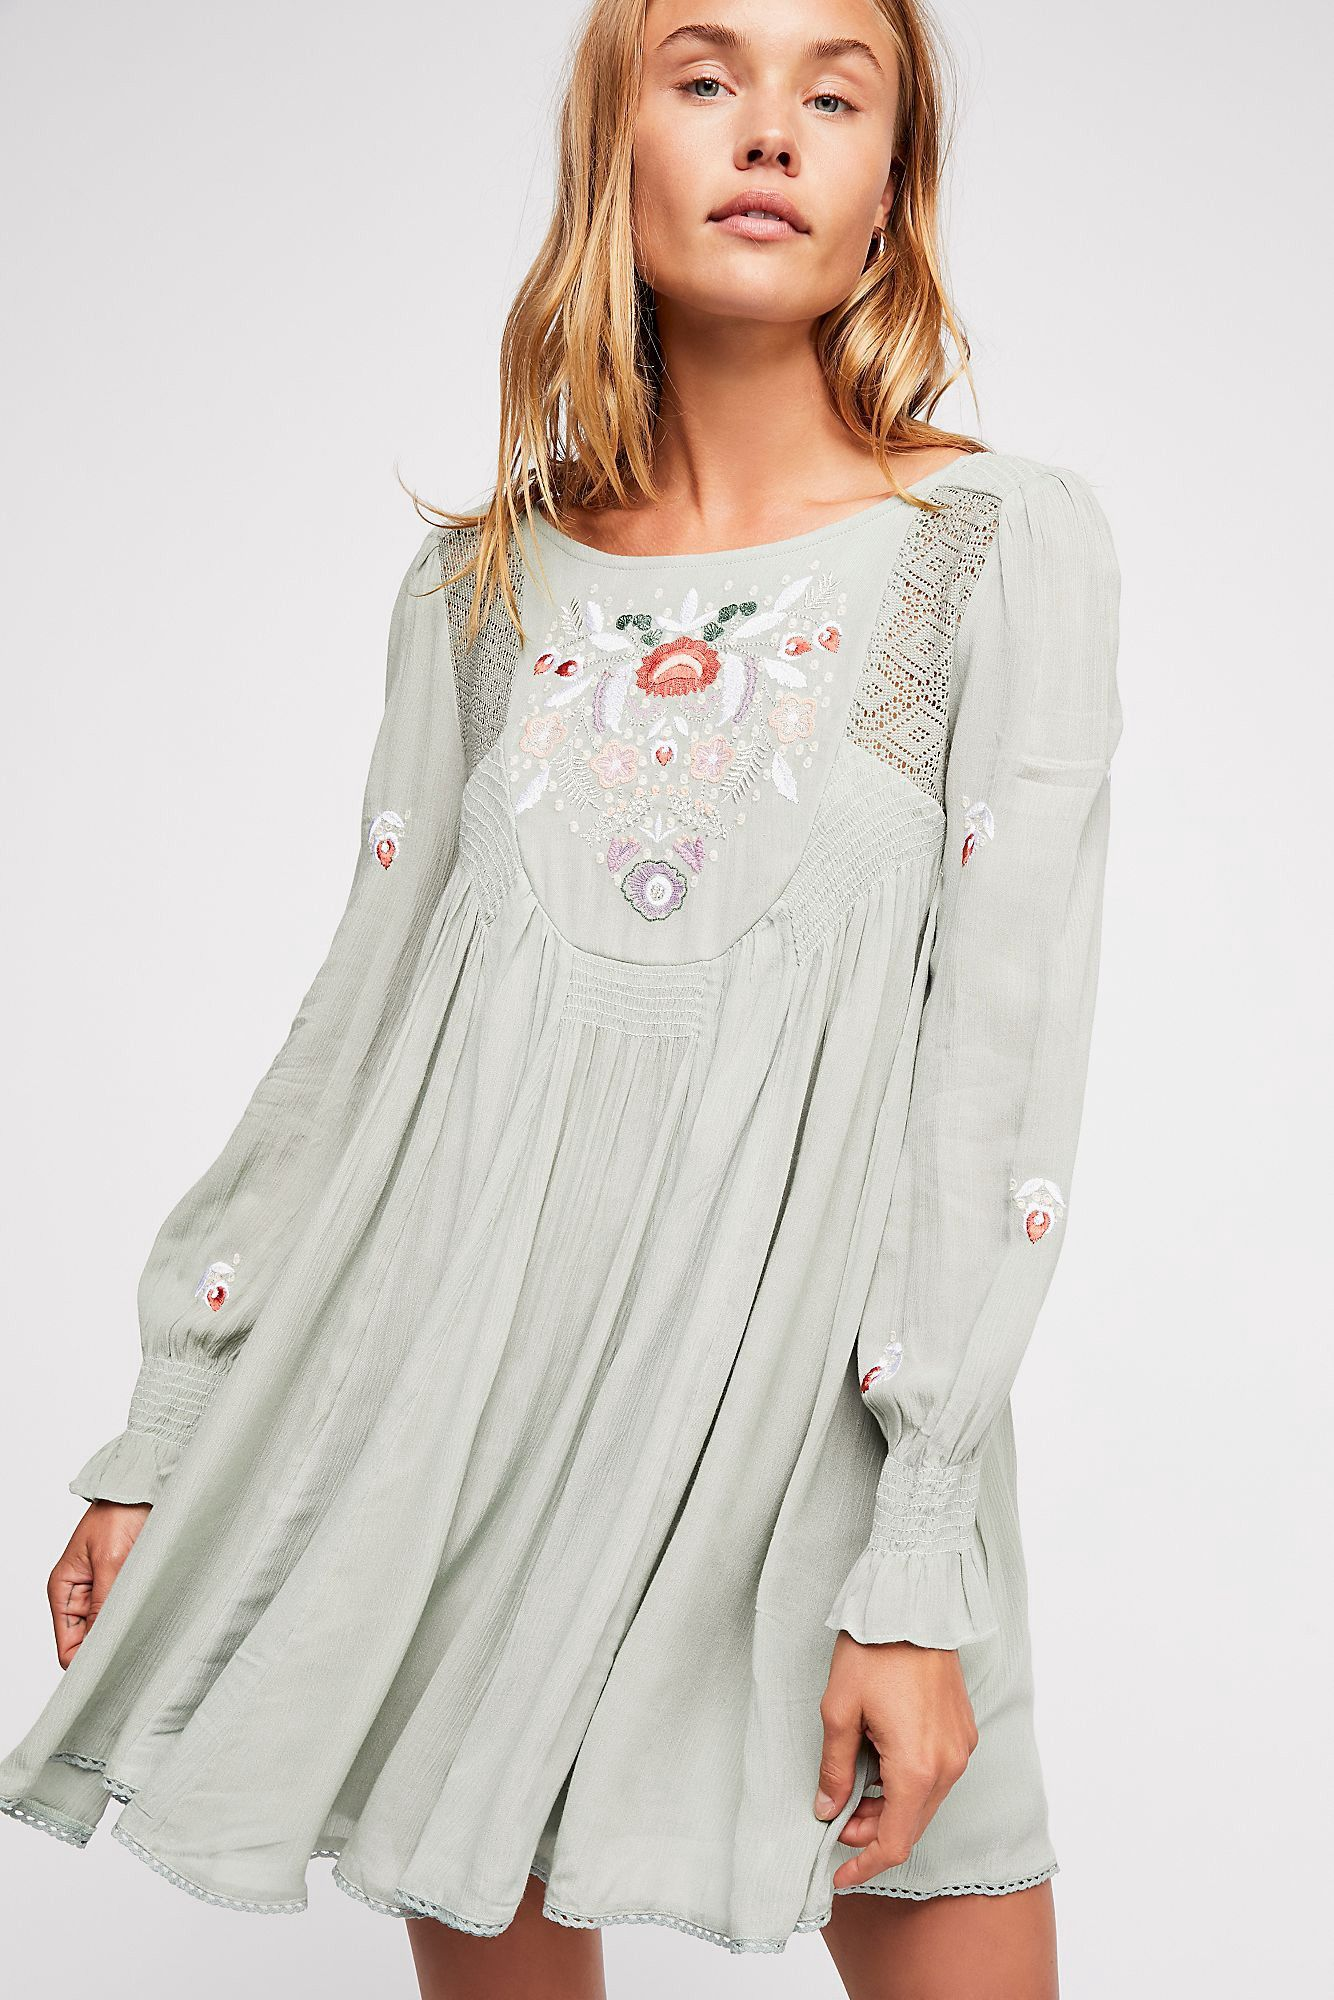 Moya embroidered mini dress by free people in products